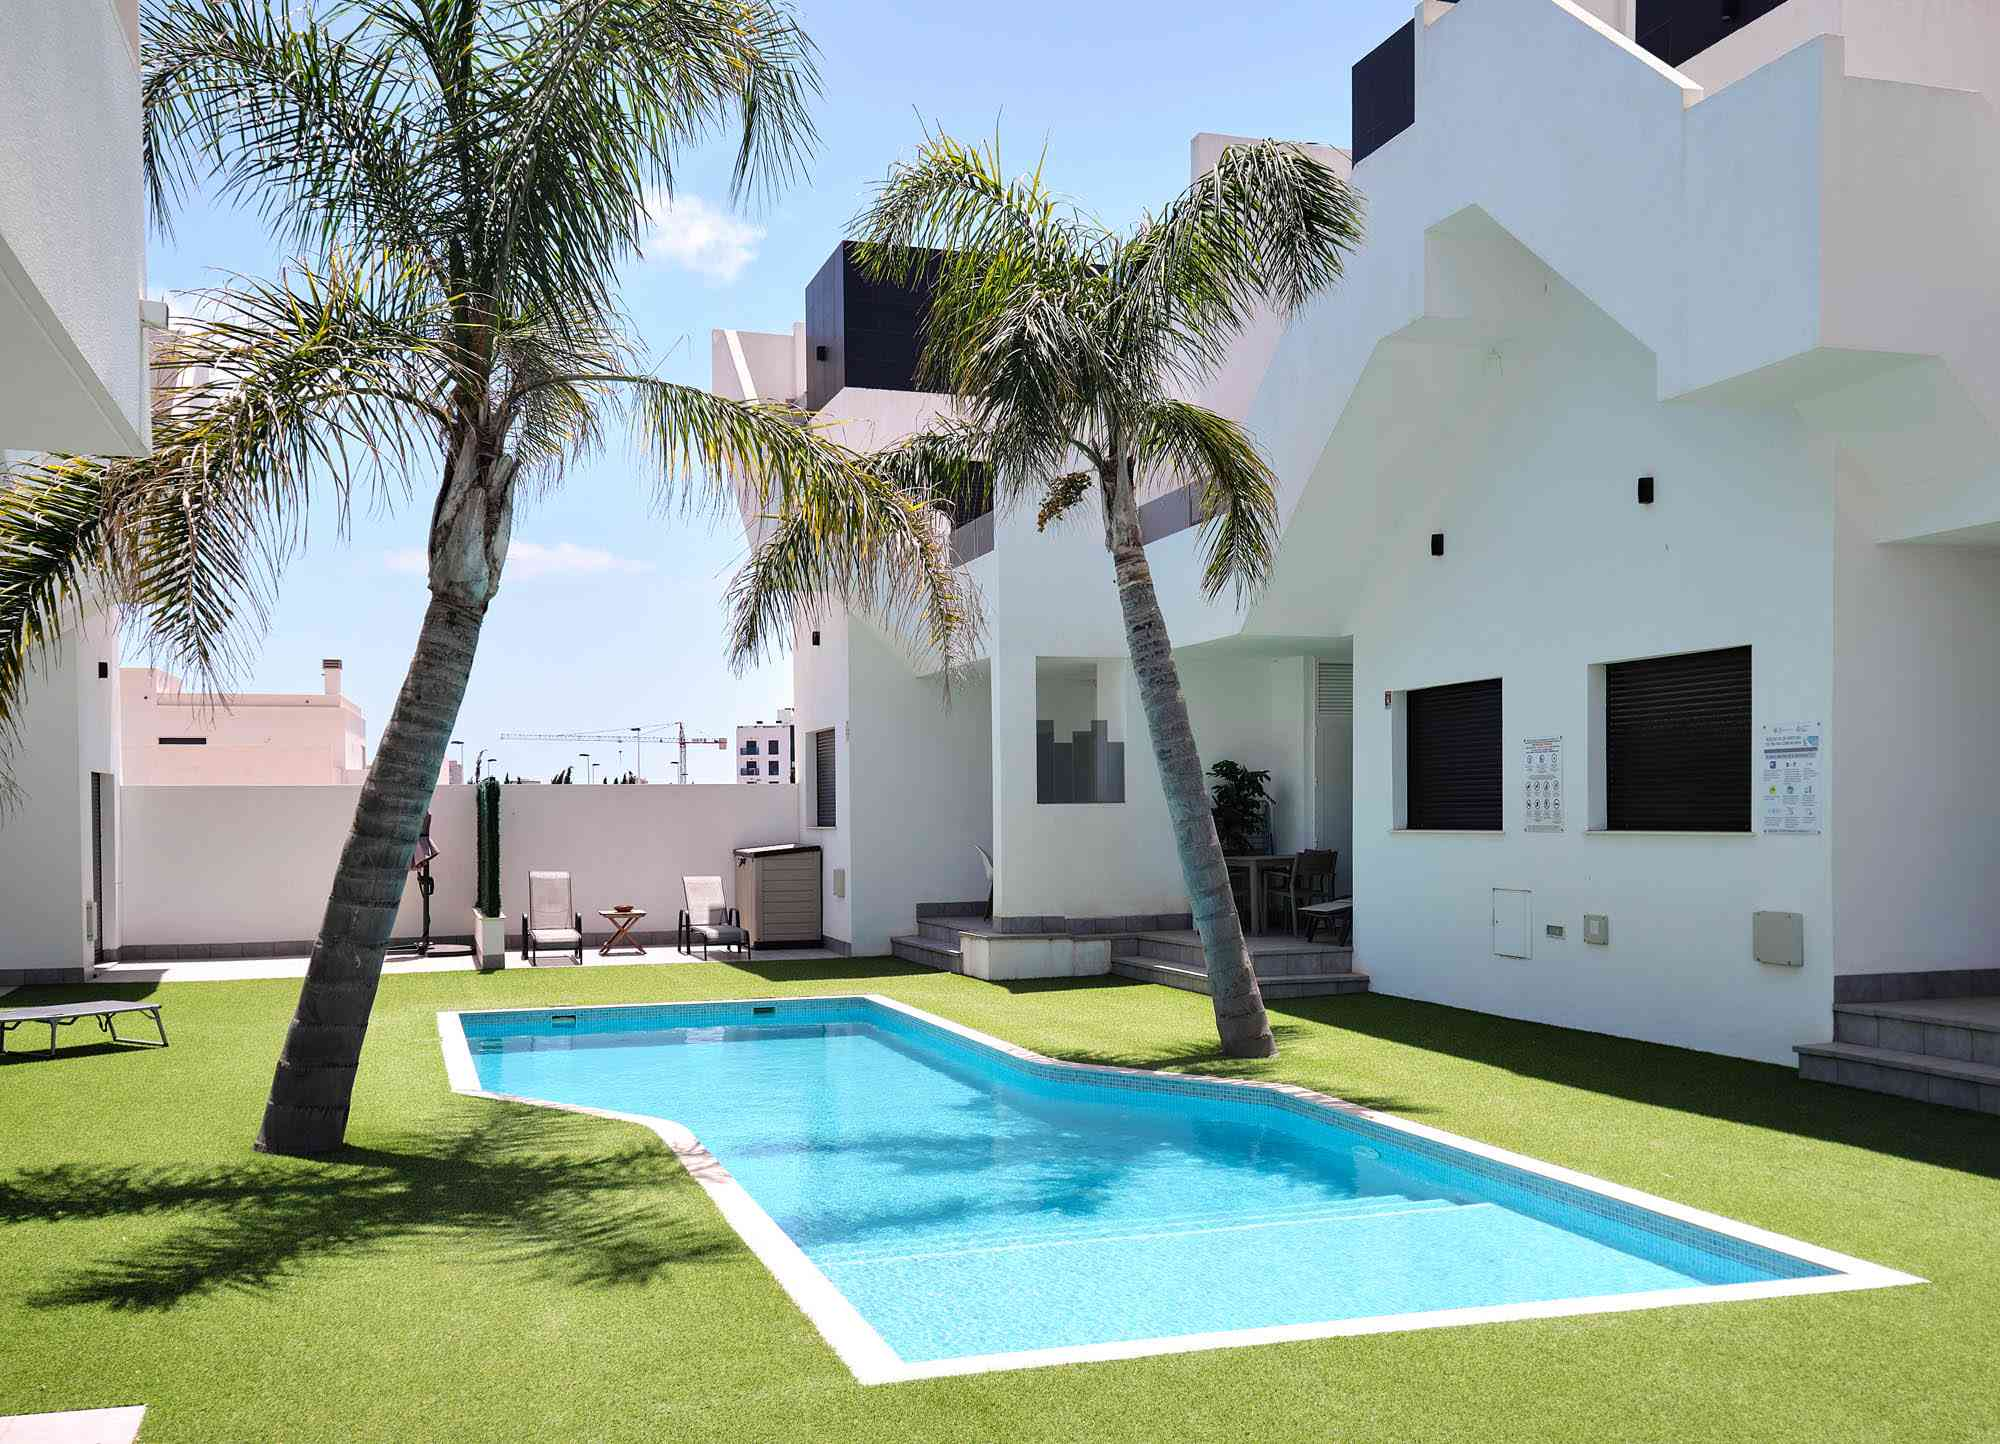 For sale: 2 bedroom apartment / flat in Lo Pagan